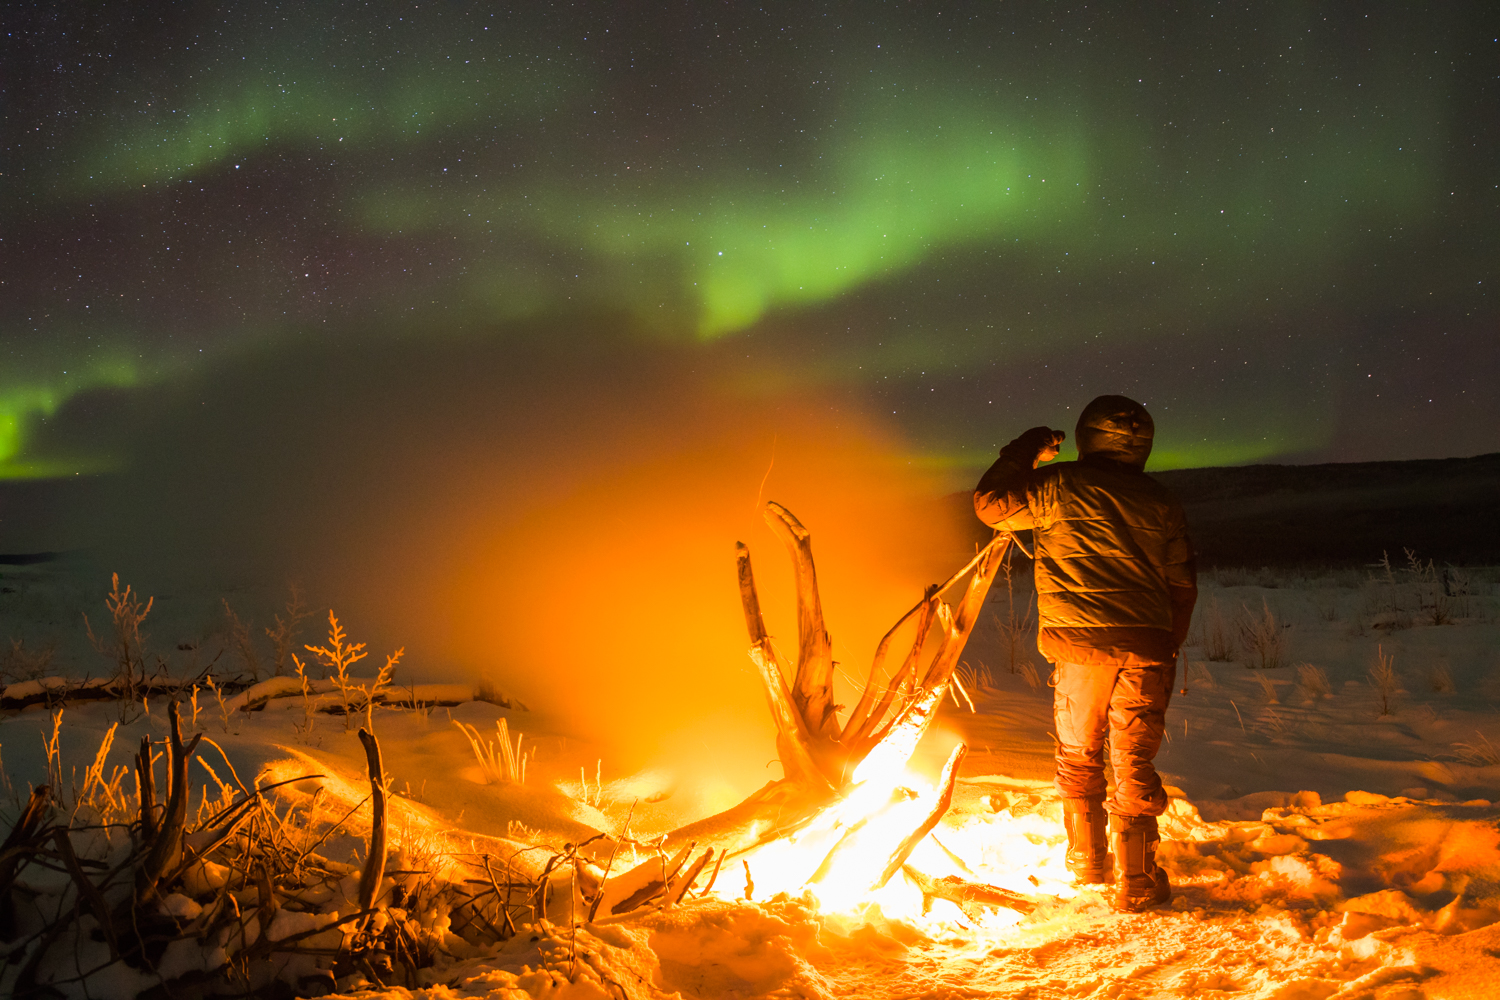 Staying Warm At -26 F - Delta River Driftwood Fire Aurora